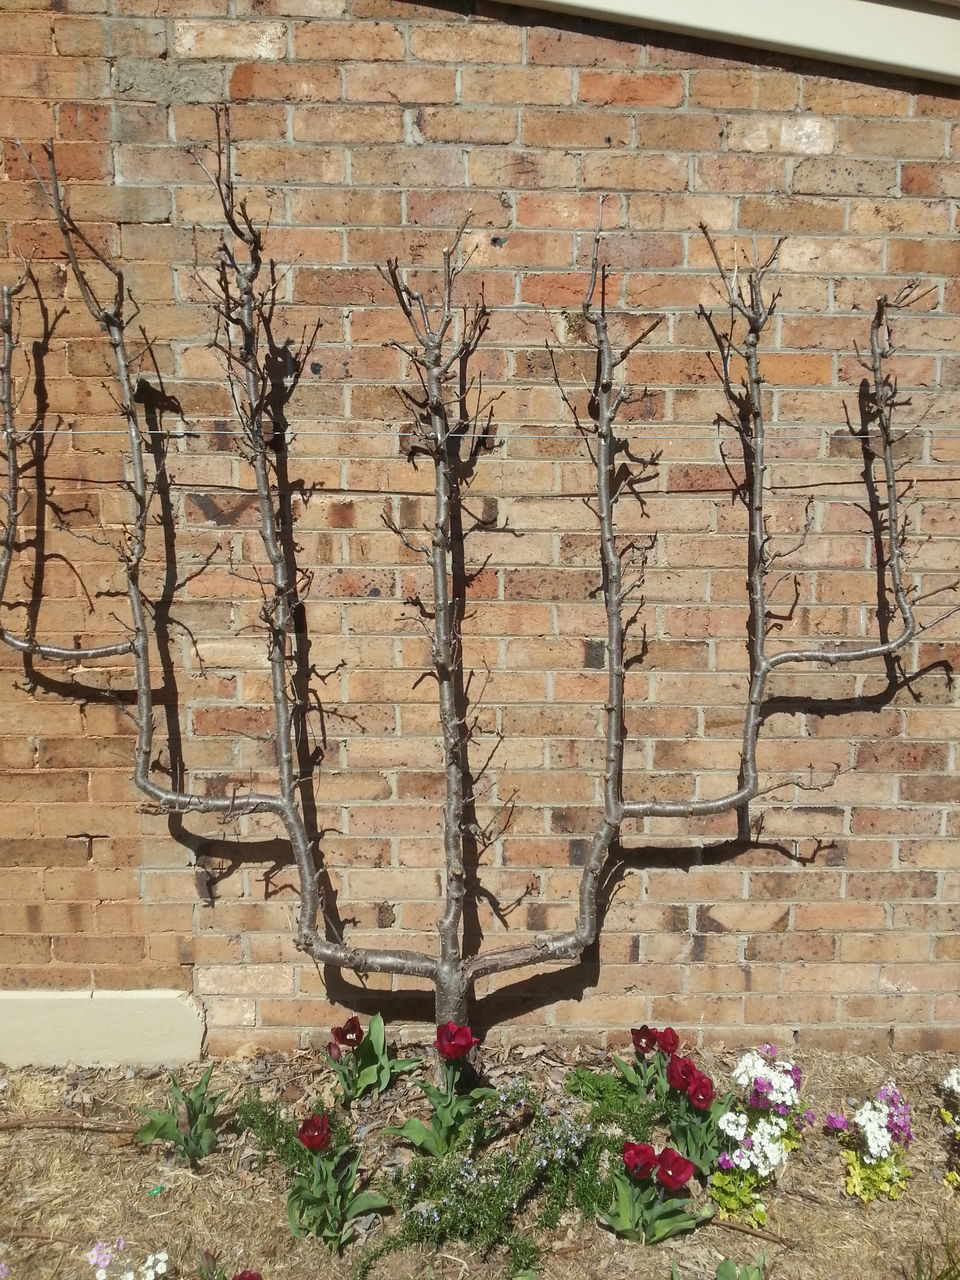 architecture, no people, built structure, brick wall, day, plant, outdoors, building exterior, tree, growth, nature, flower